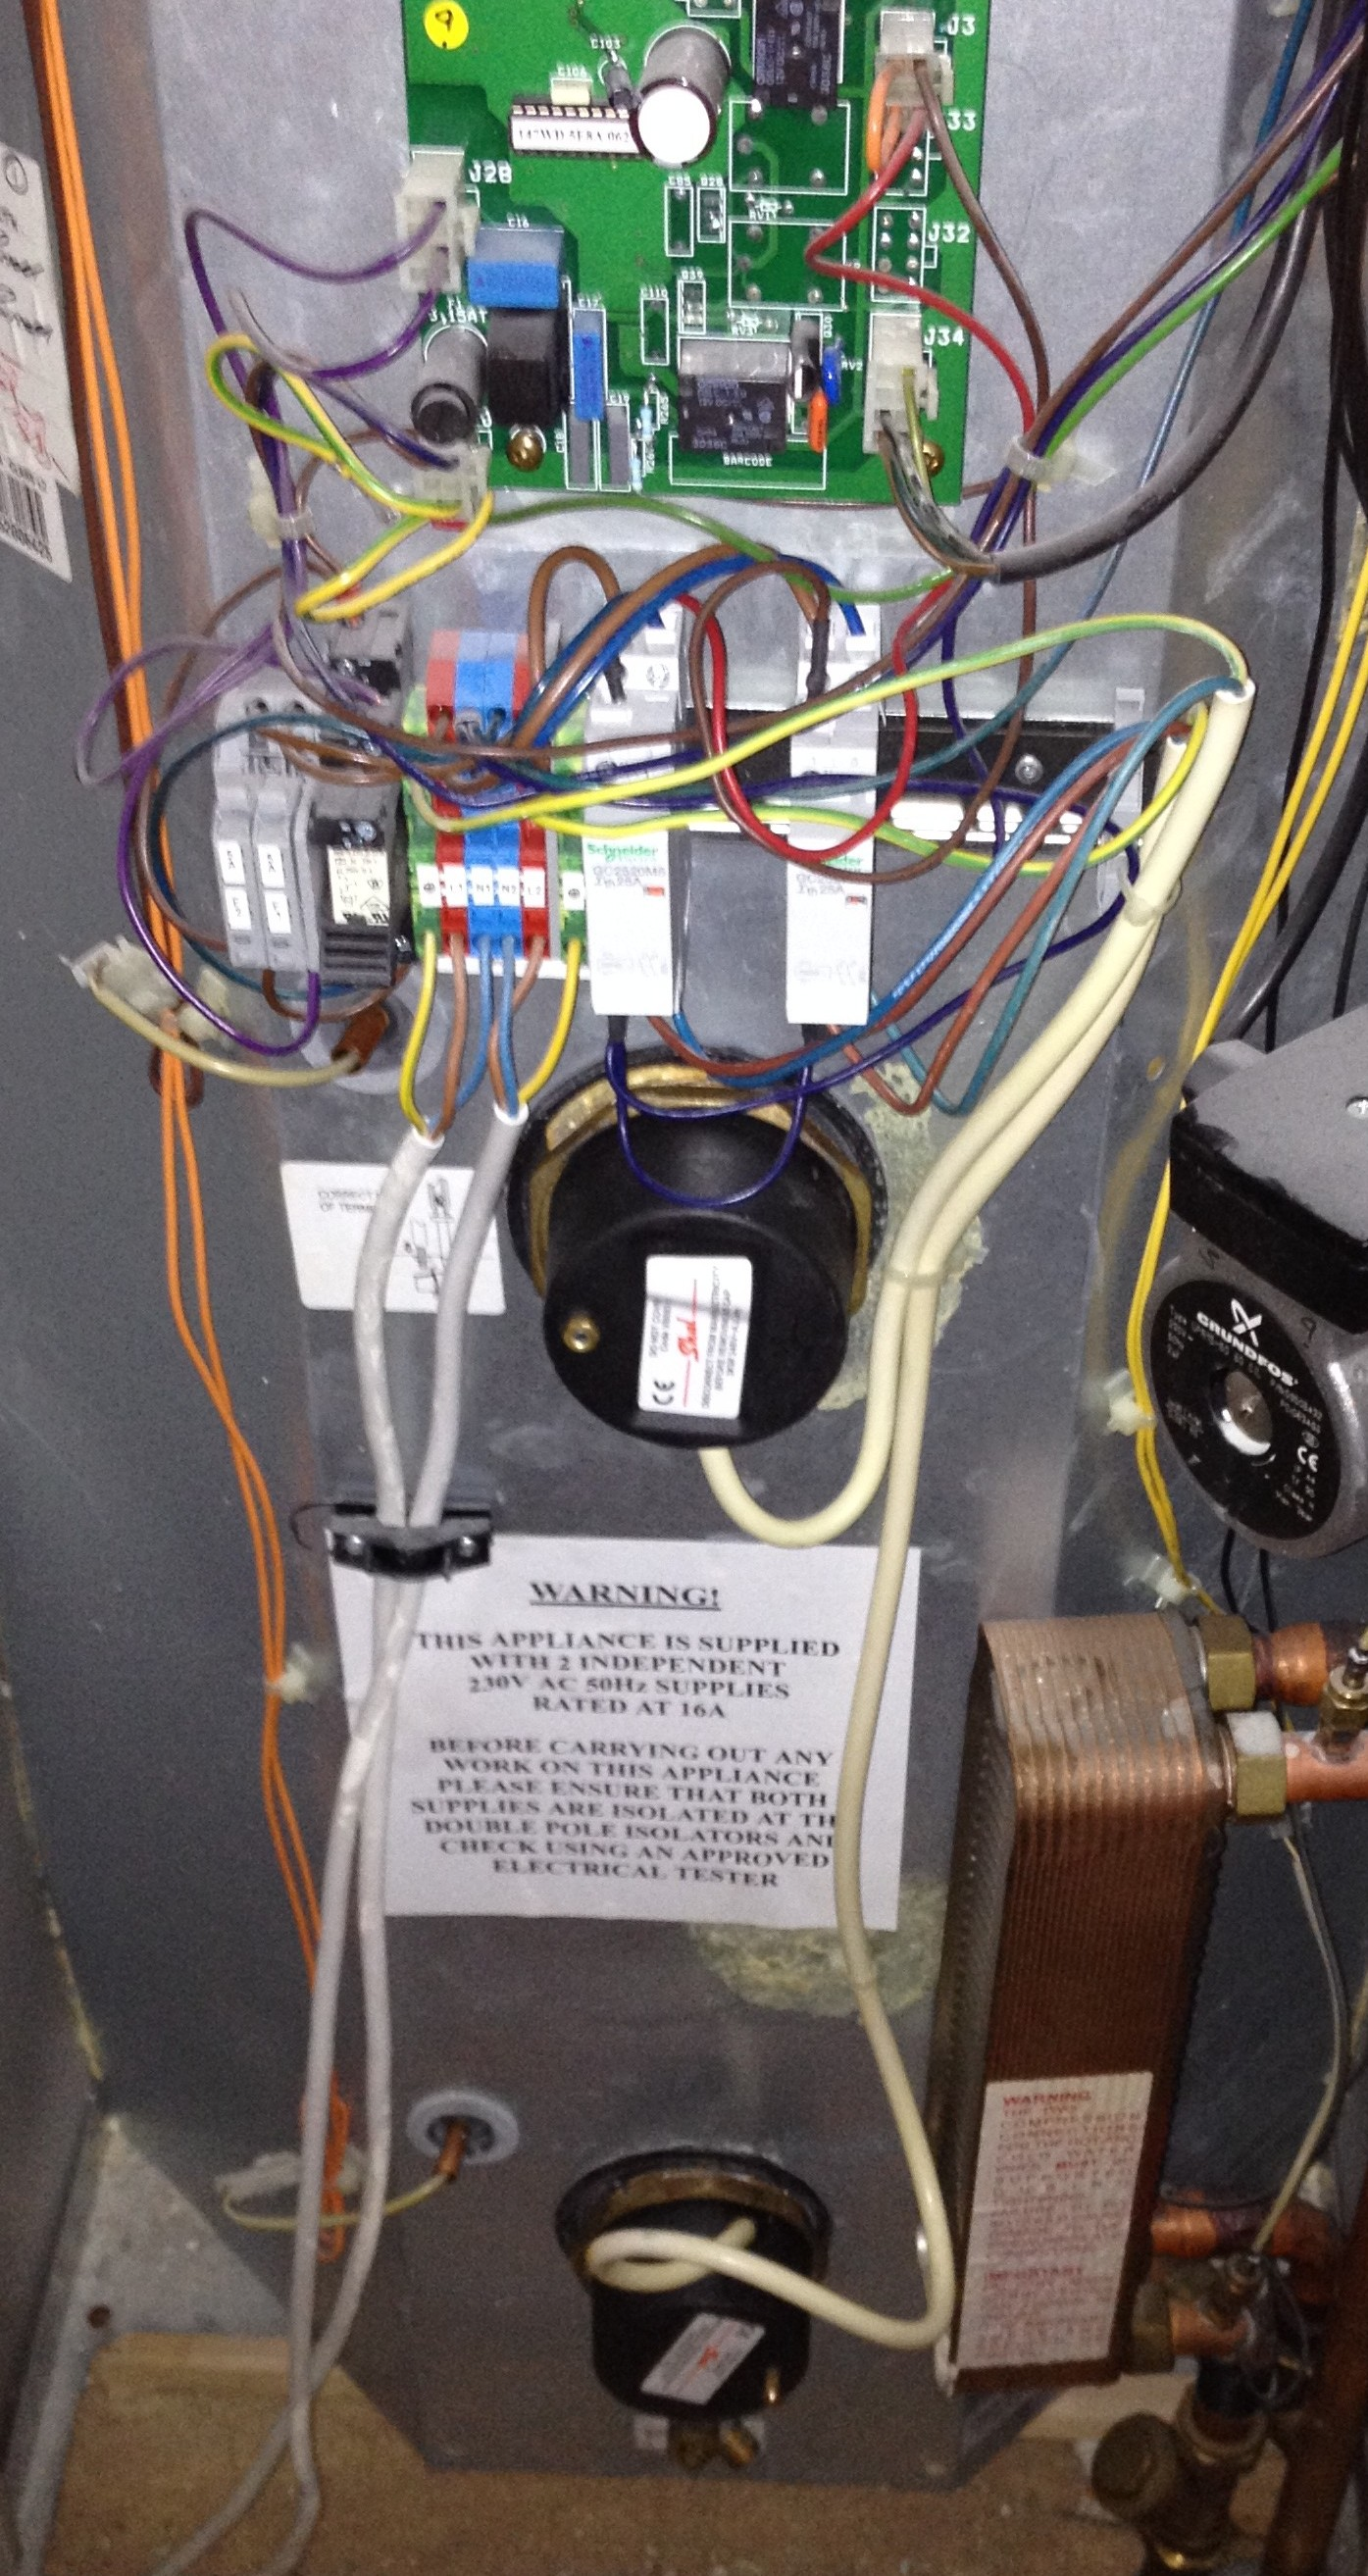 Wiring Rheem Water Heater Free Download Wiring Diagrams Pictures